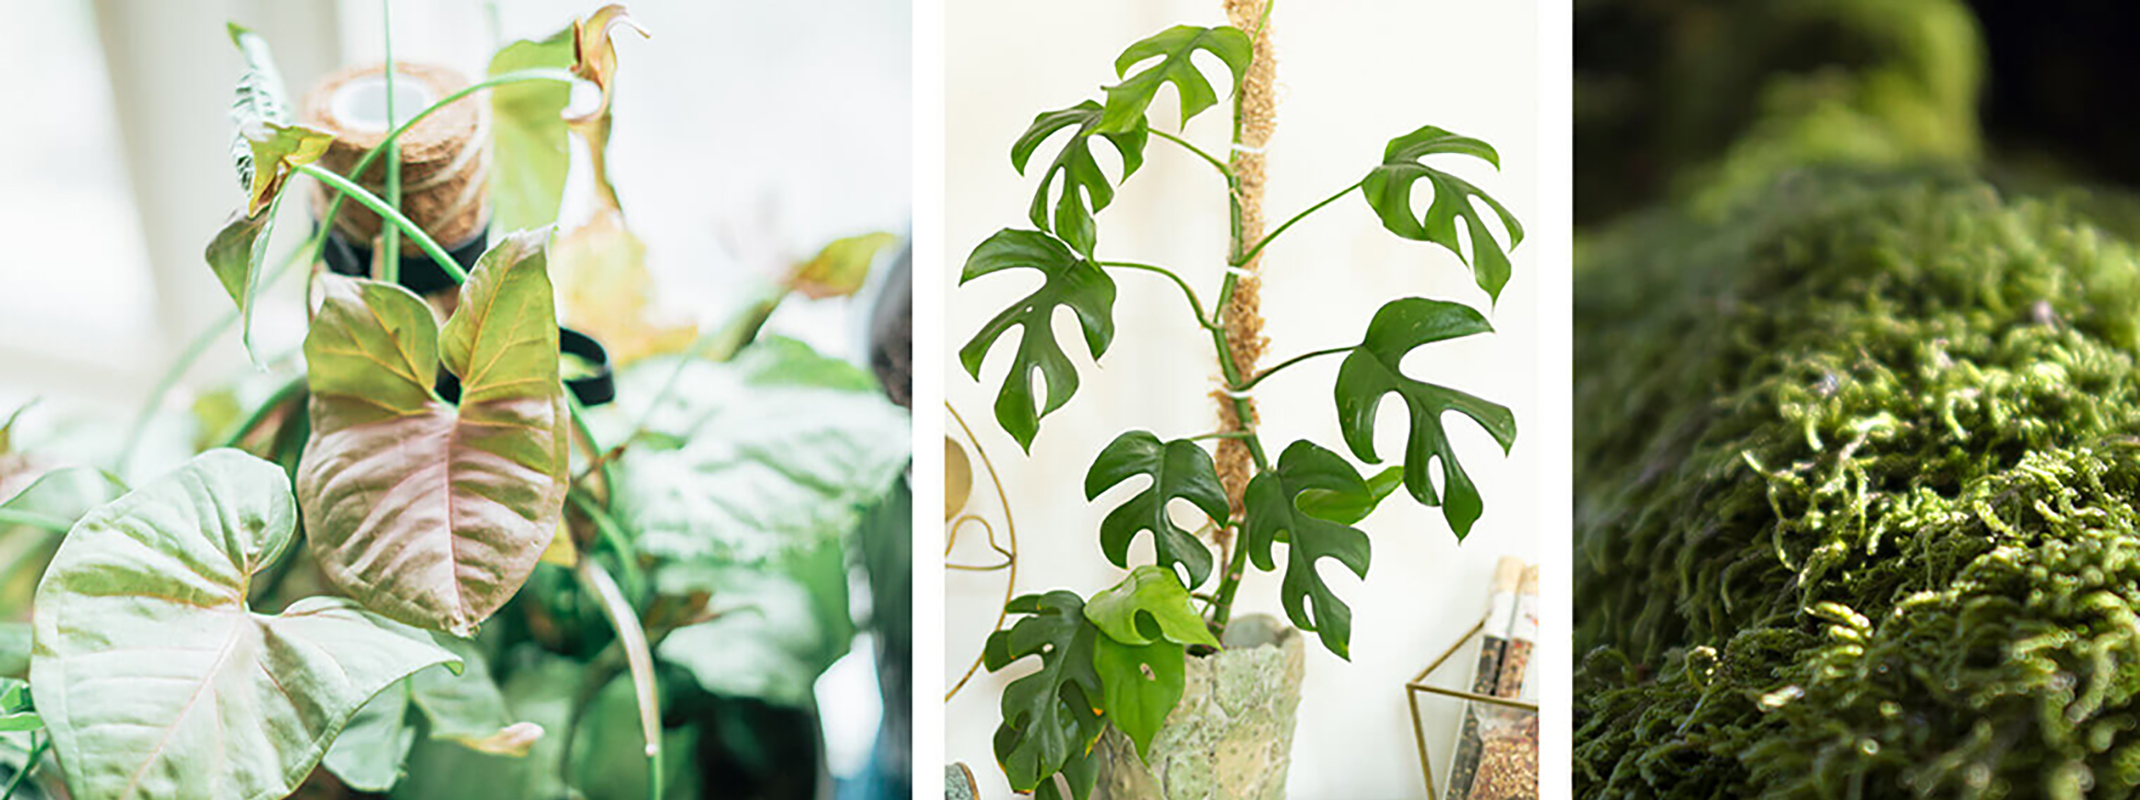 3 image of houseplants with diy moss poles in the houseplants in the first two images and the last is a clos up of moss